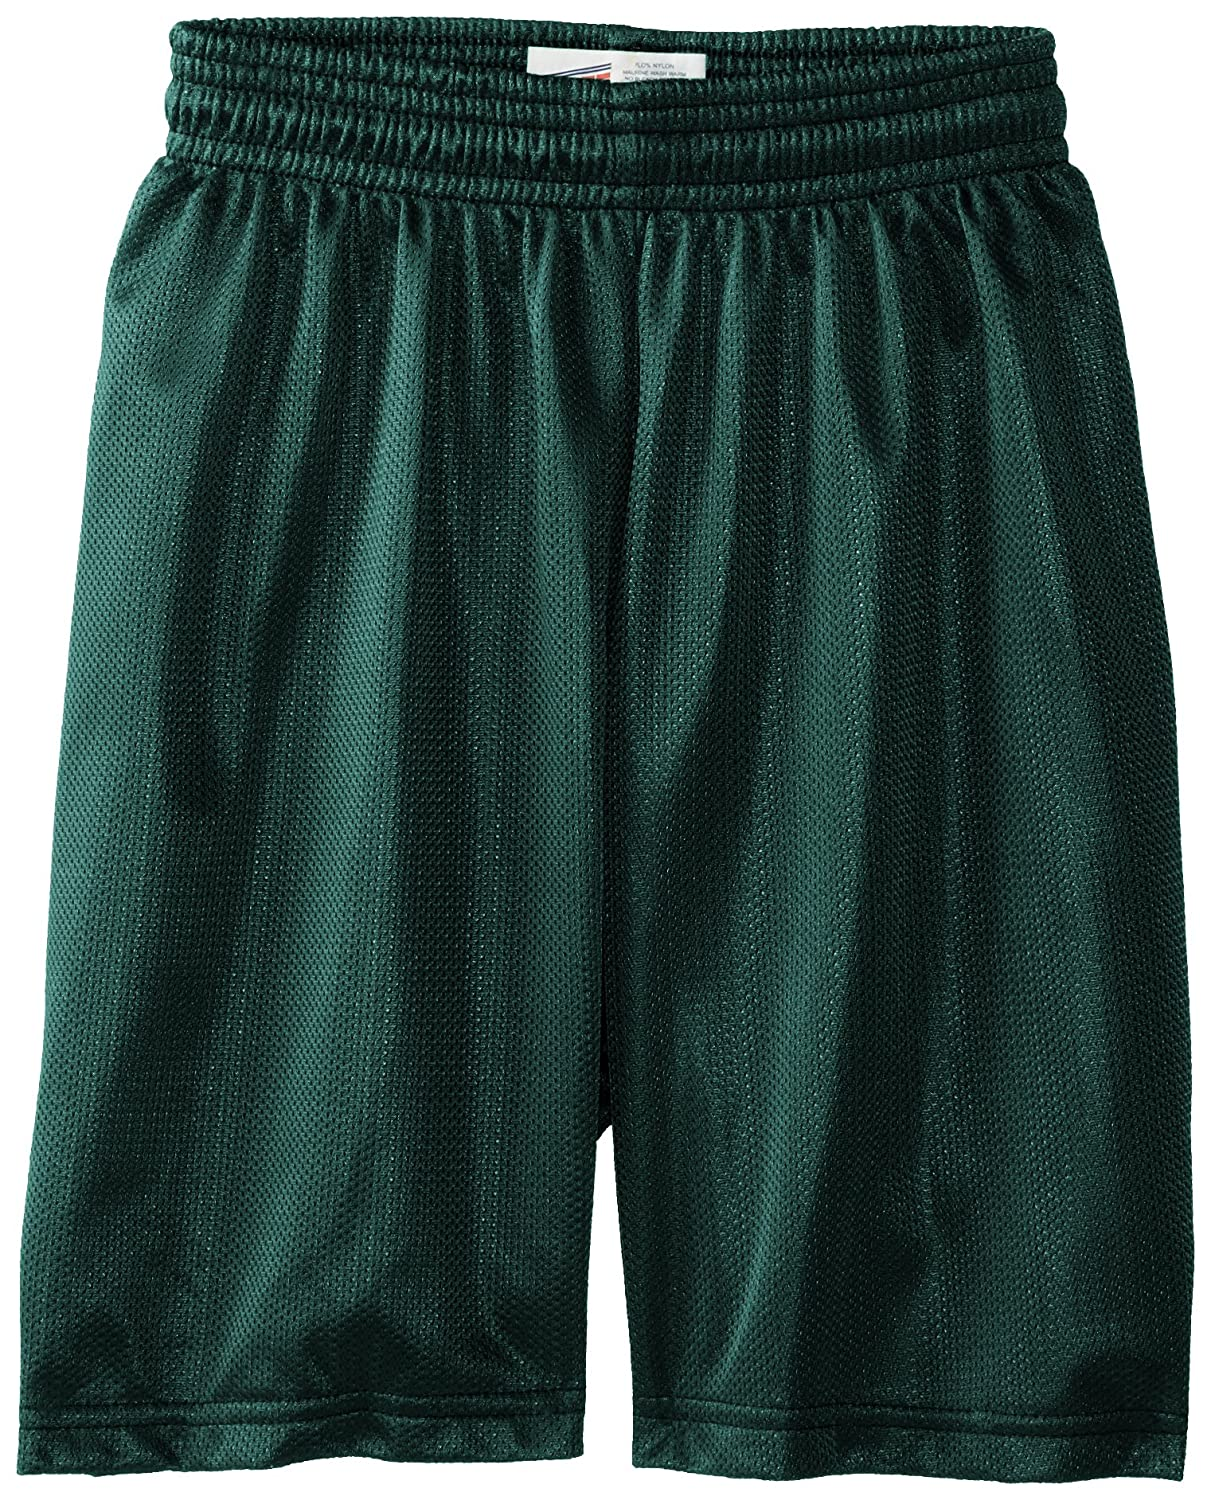 Soffe Big Boys' Nylon Mini Mesh Fitness Short M J Soffe - Kids B058